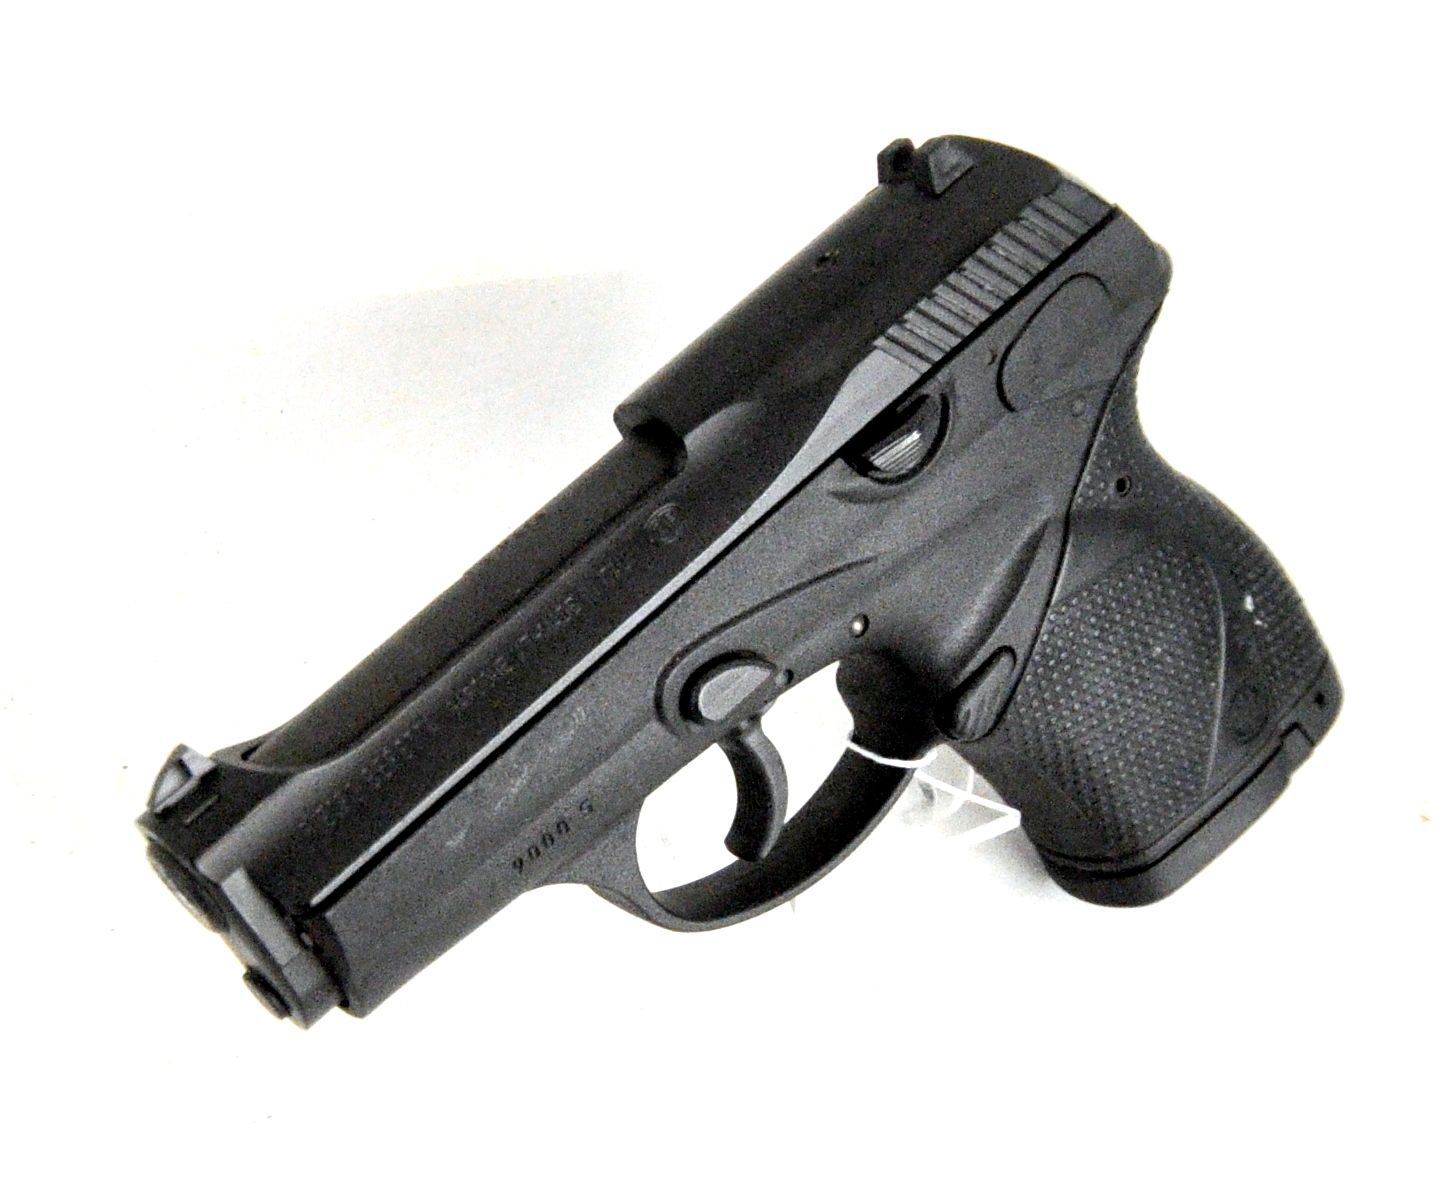 "Beretta 9000S D Model 9mm. The Beretta 9000 is a compact semi-automatic pistol, designed primarily for personal protection or as concealed carry (CCW). It features a contoured grip, ambidextrous magazine release, and fixed 3-dot sights. D Model means DAO with no external safety. 12-round capacity of 9mm. 3.5"" barrel. 26 oz. [Pre-Owned] $379.99"